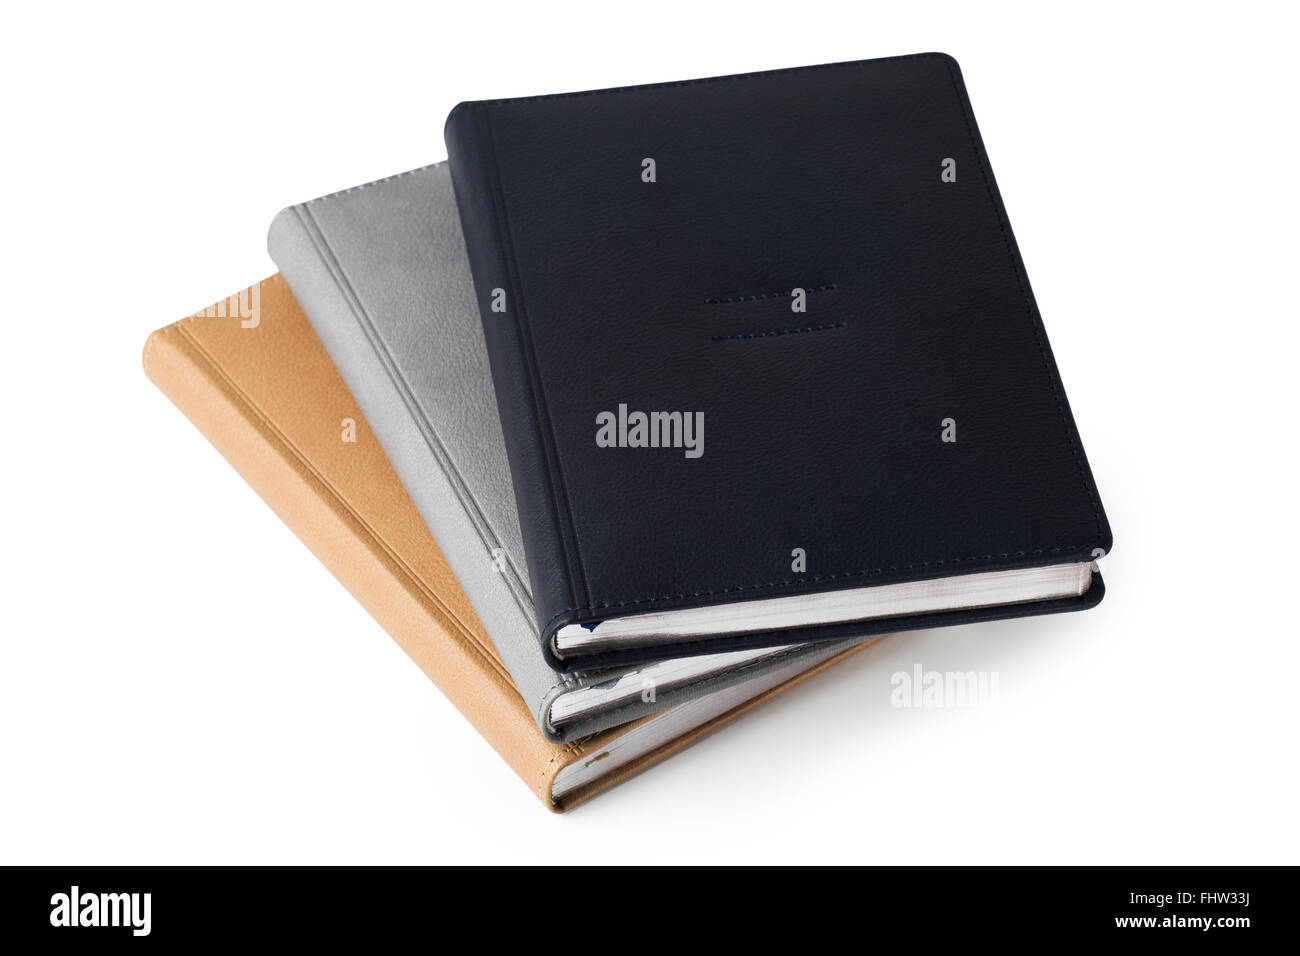 Pile of leather hardcover business diaries isolated on white background. Black, gray and beige notebooks - Stock Image